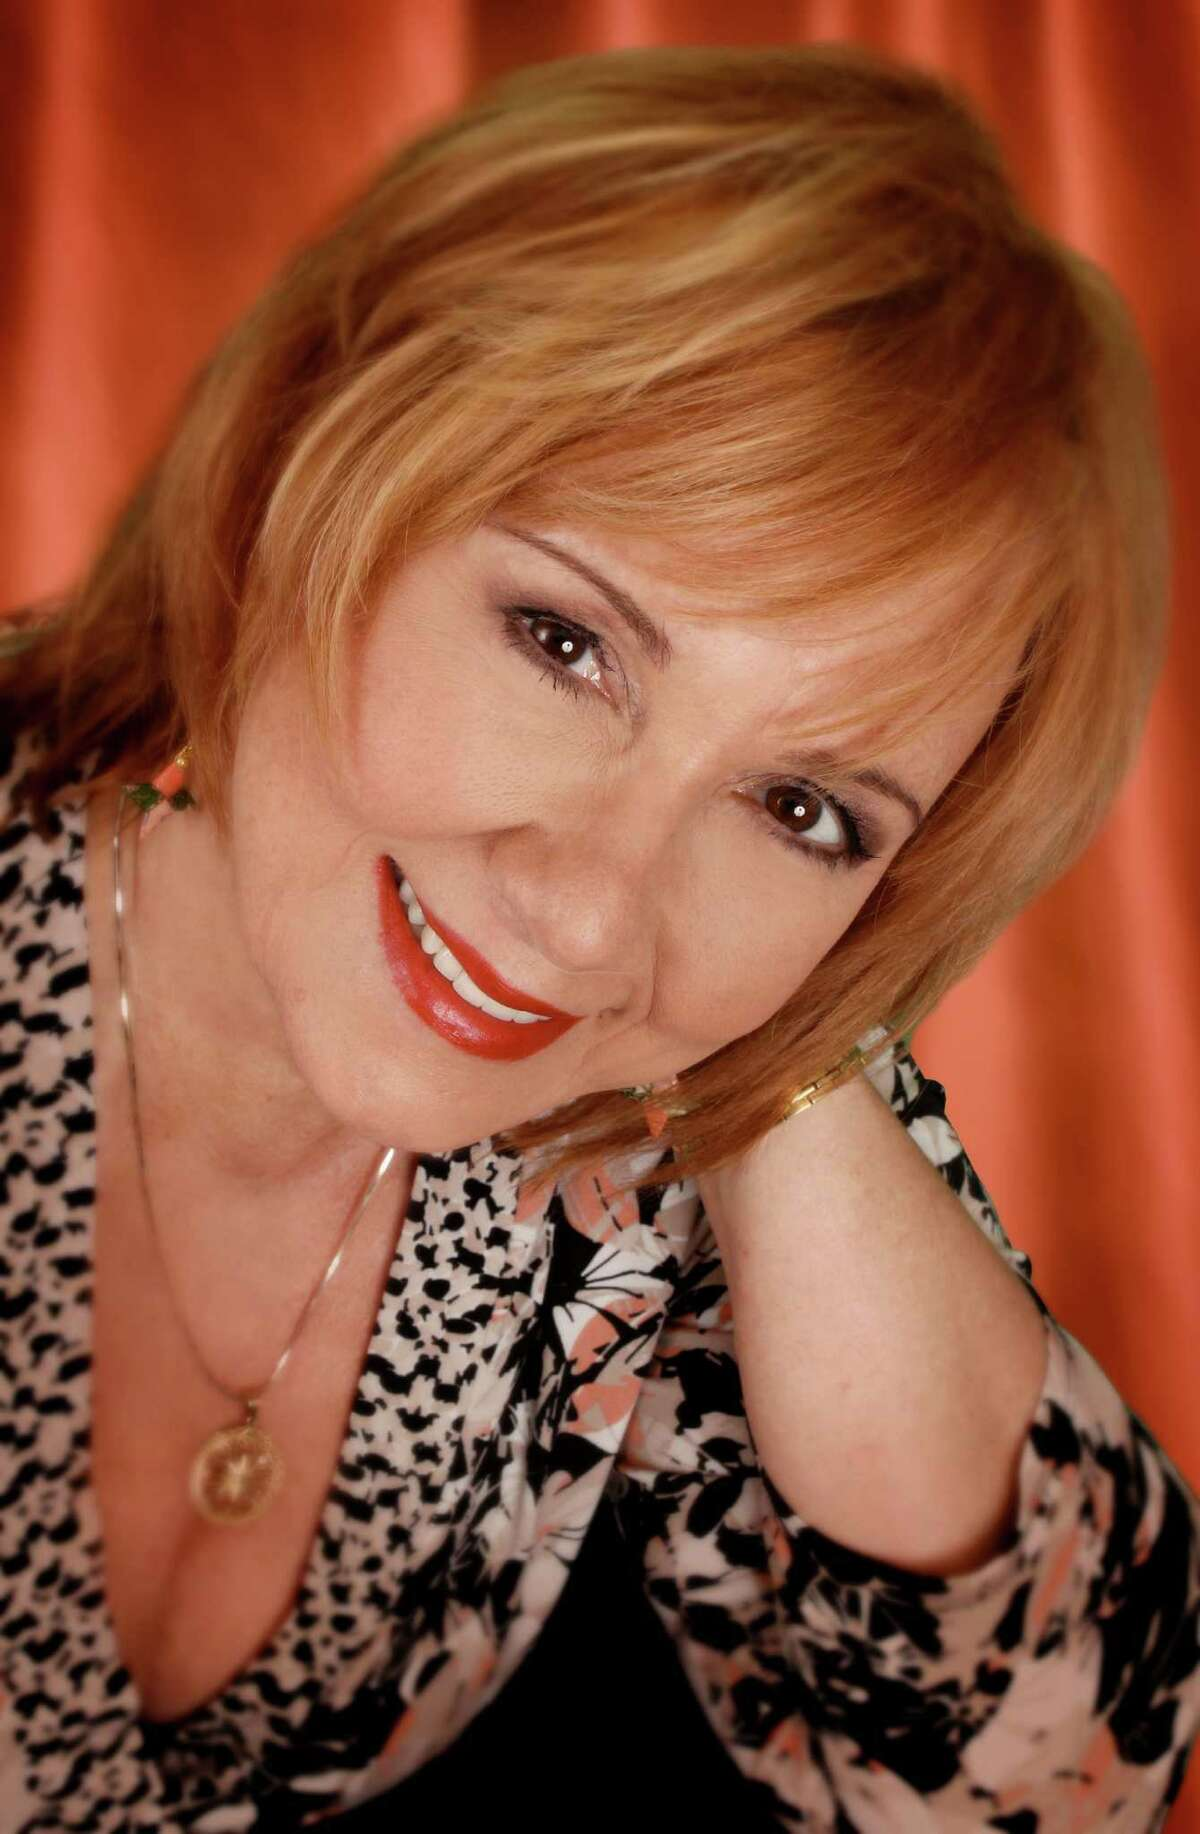 Jazz singer Roseanna Vitro will perform works by the late composer Clare Fischer.